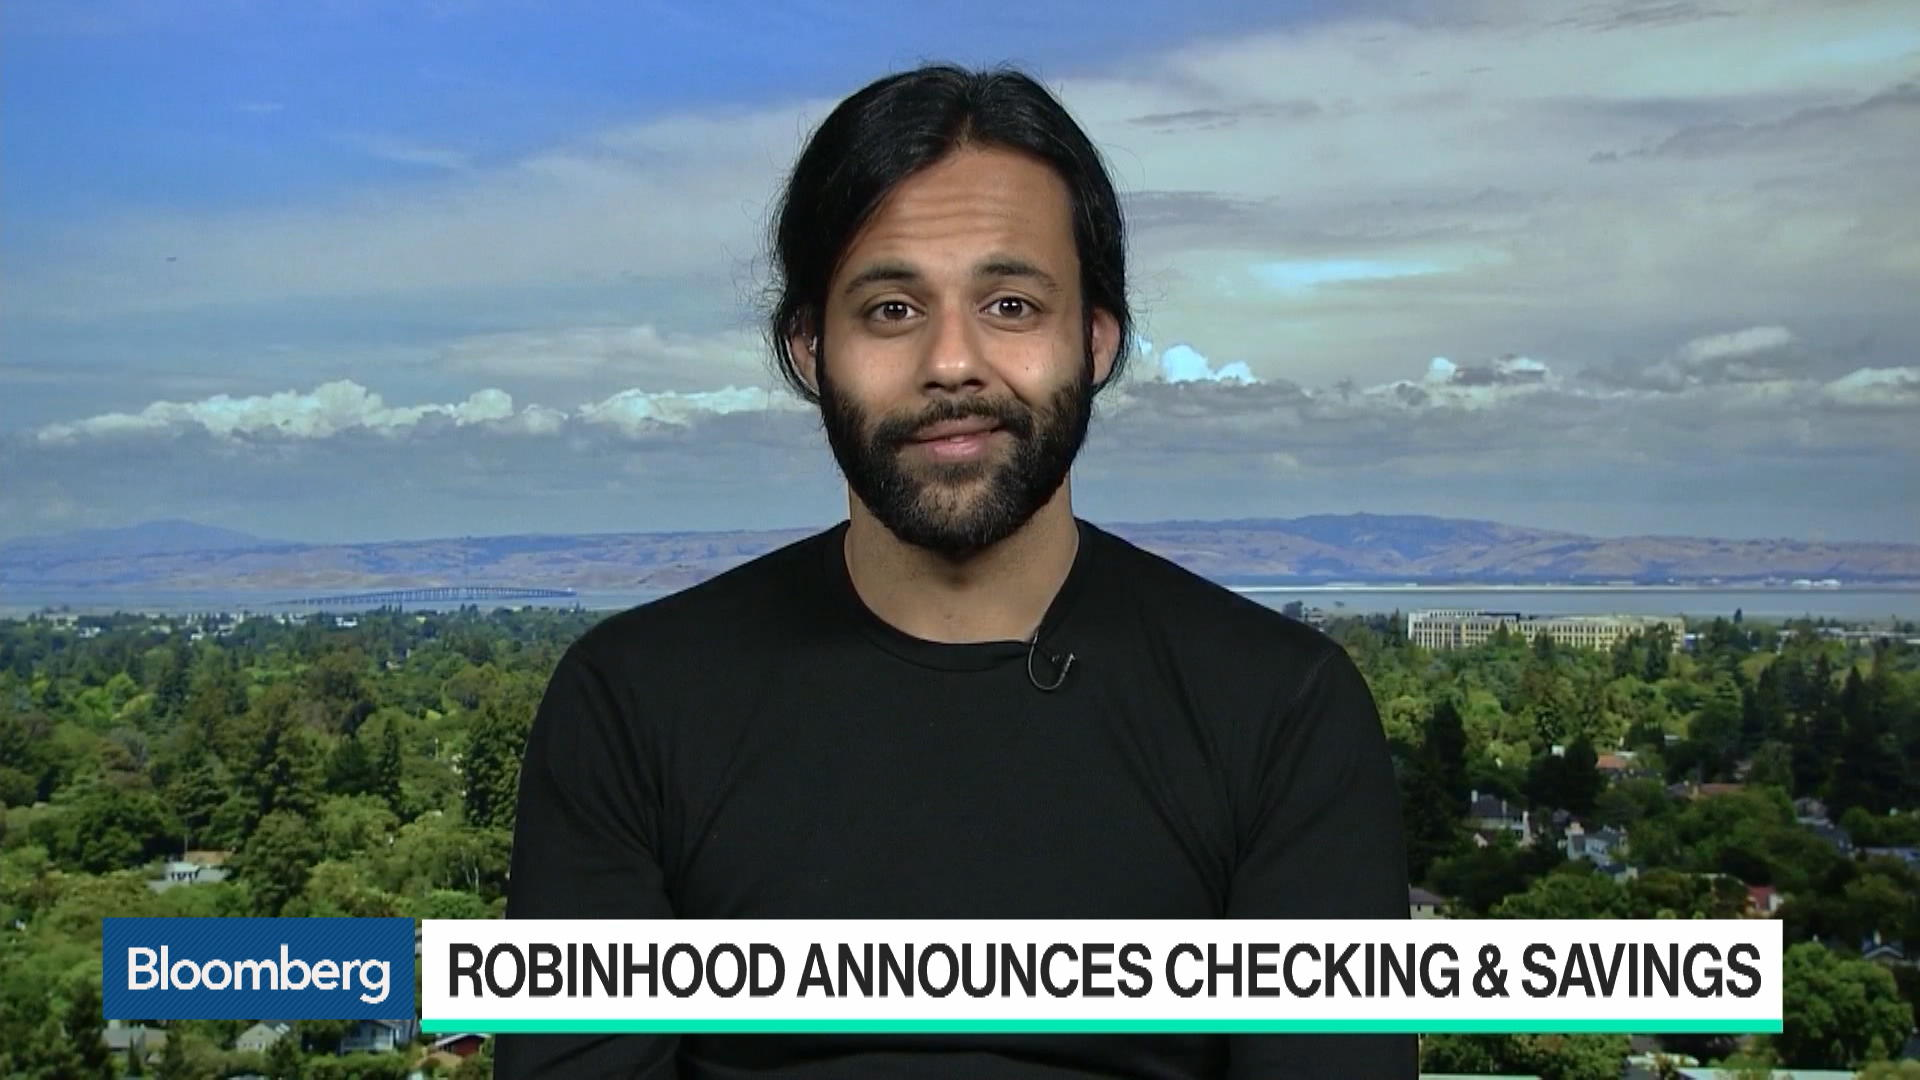 Robinhood to Offer Checking Service Promising 3% Interest